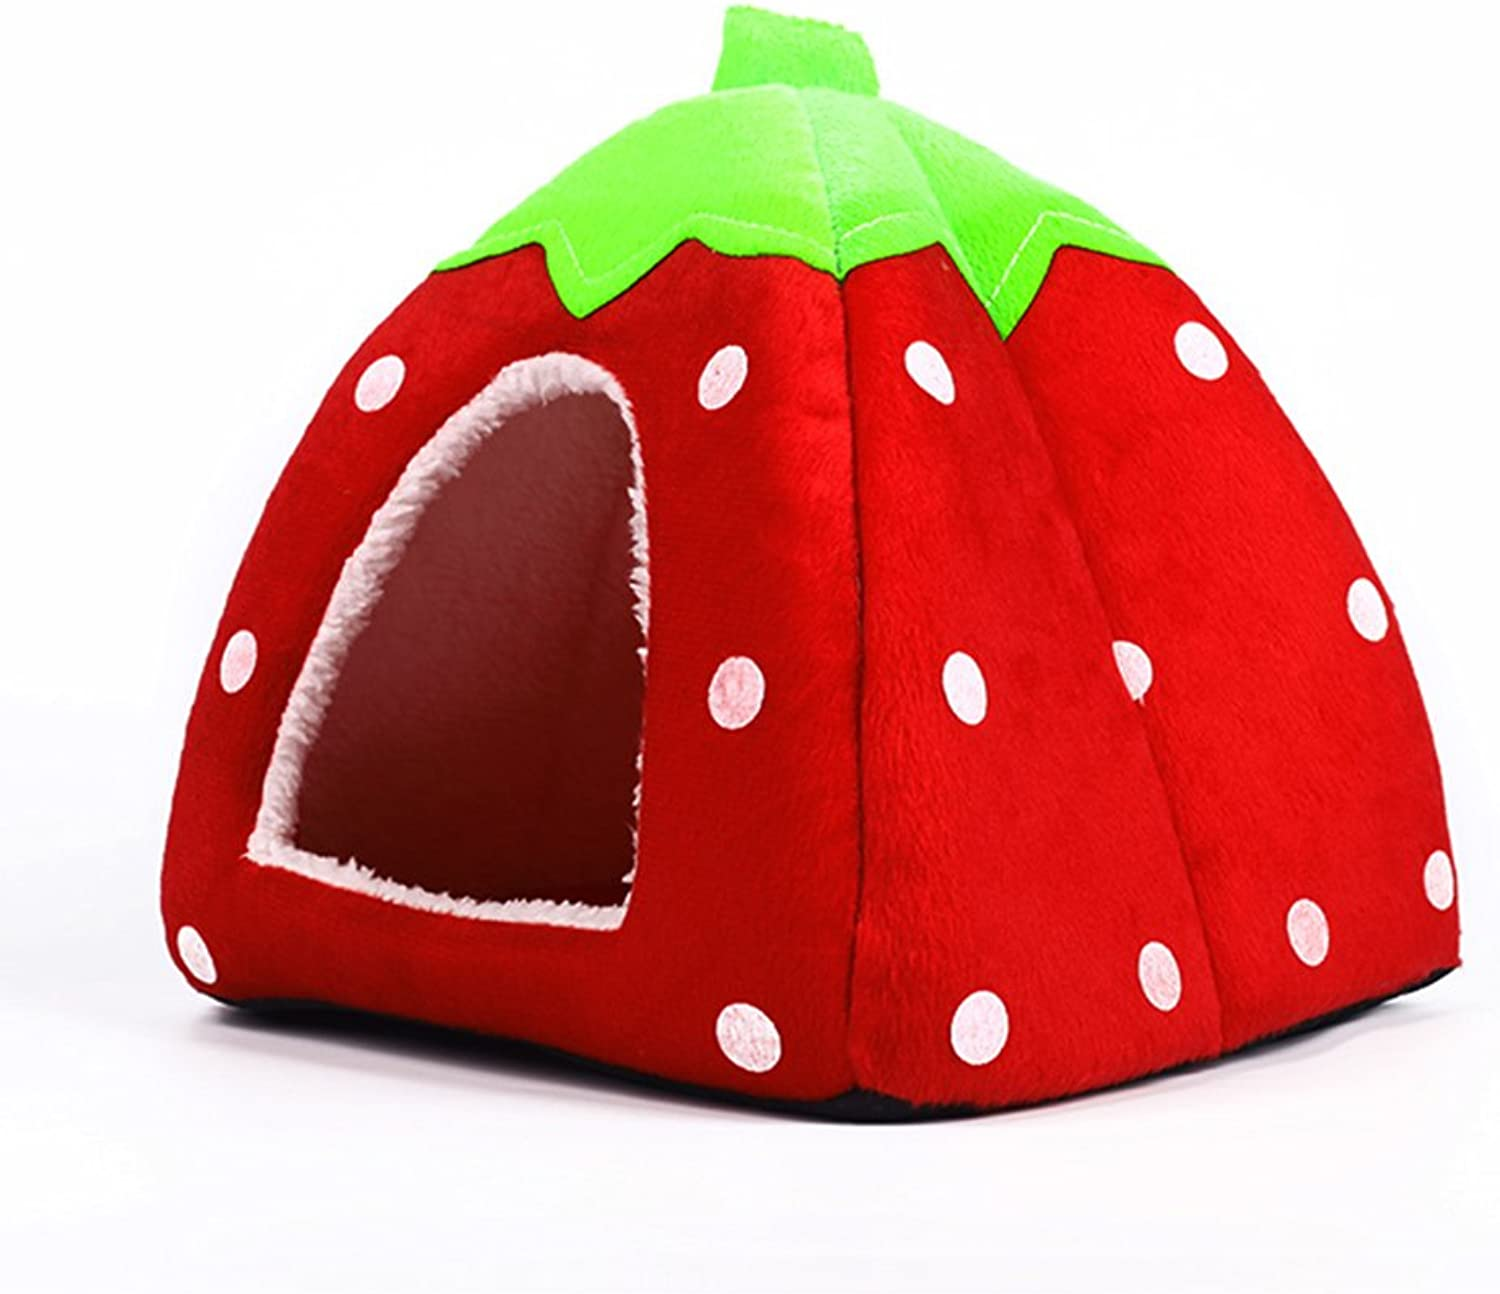 Echo Paths Strawberry Soft Tent Bed Cute Sponge Puppy Cat Cave Dog House for Pets Red XL (18.918.90.8 inch)